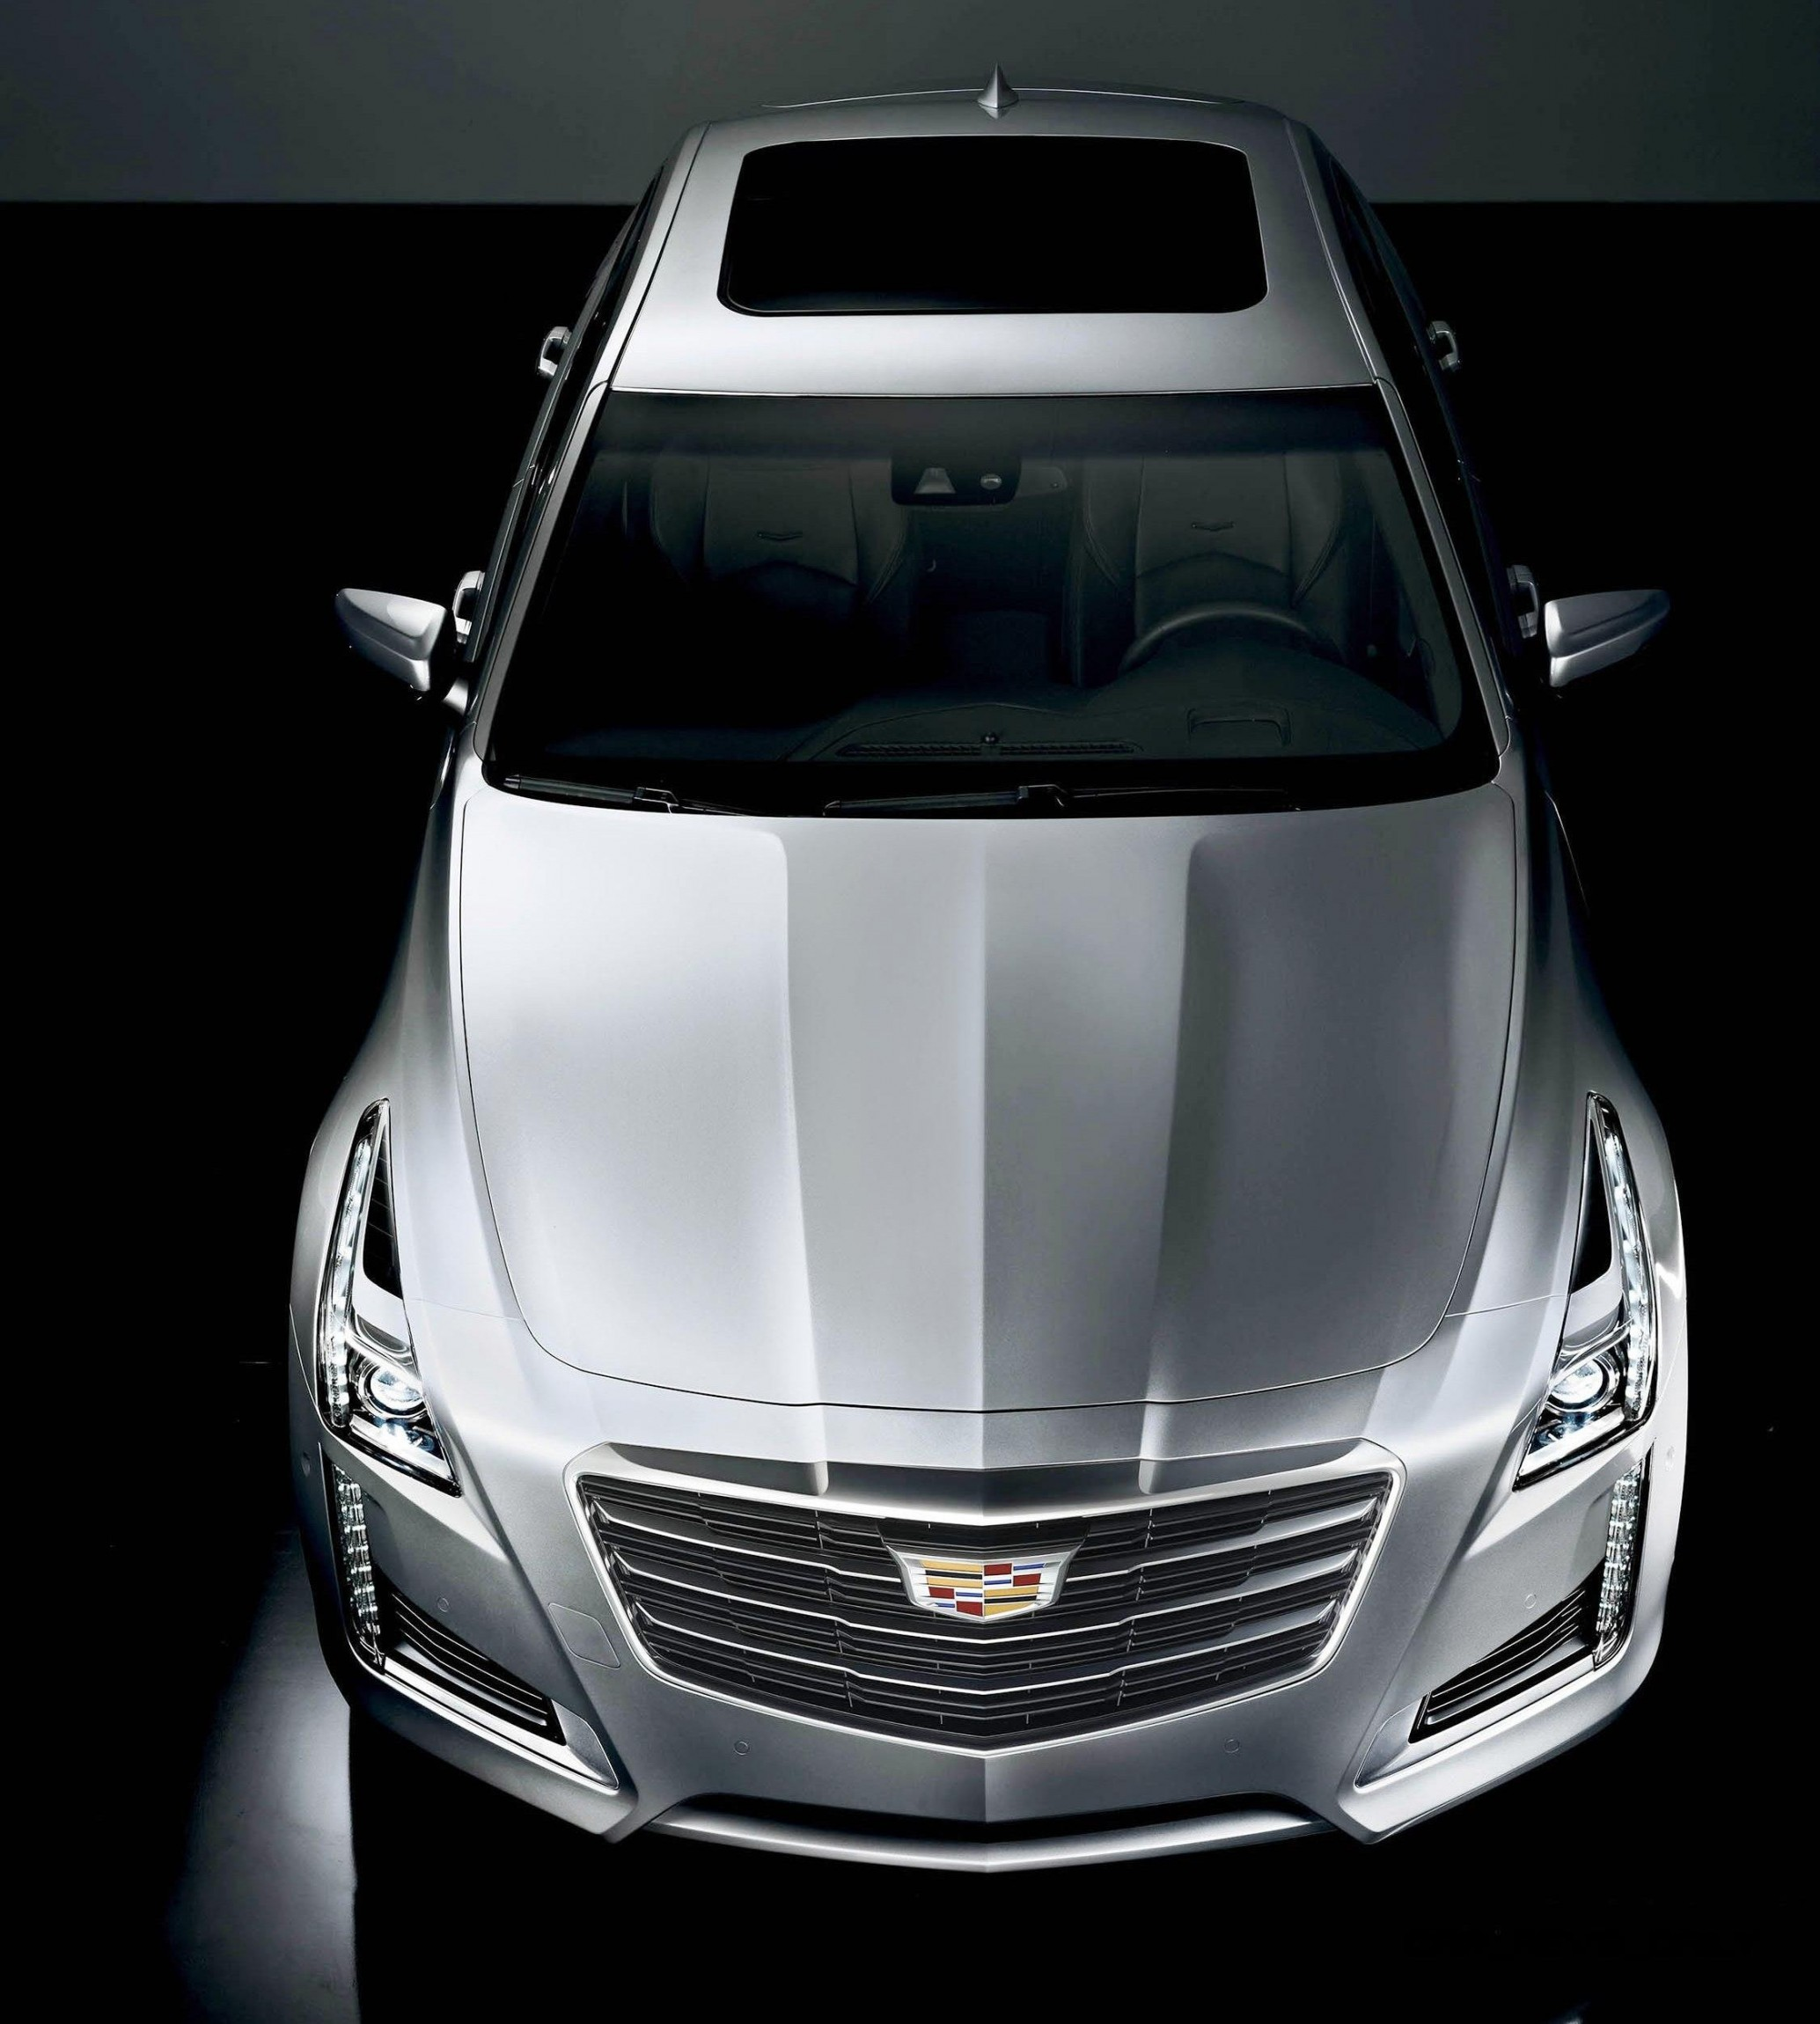 2014 Cars Cadillac Cts Use: 2015 Cadillac CTS Updated With New Badges, LED Brake